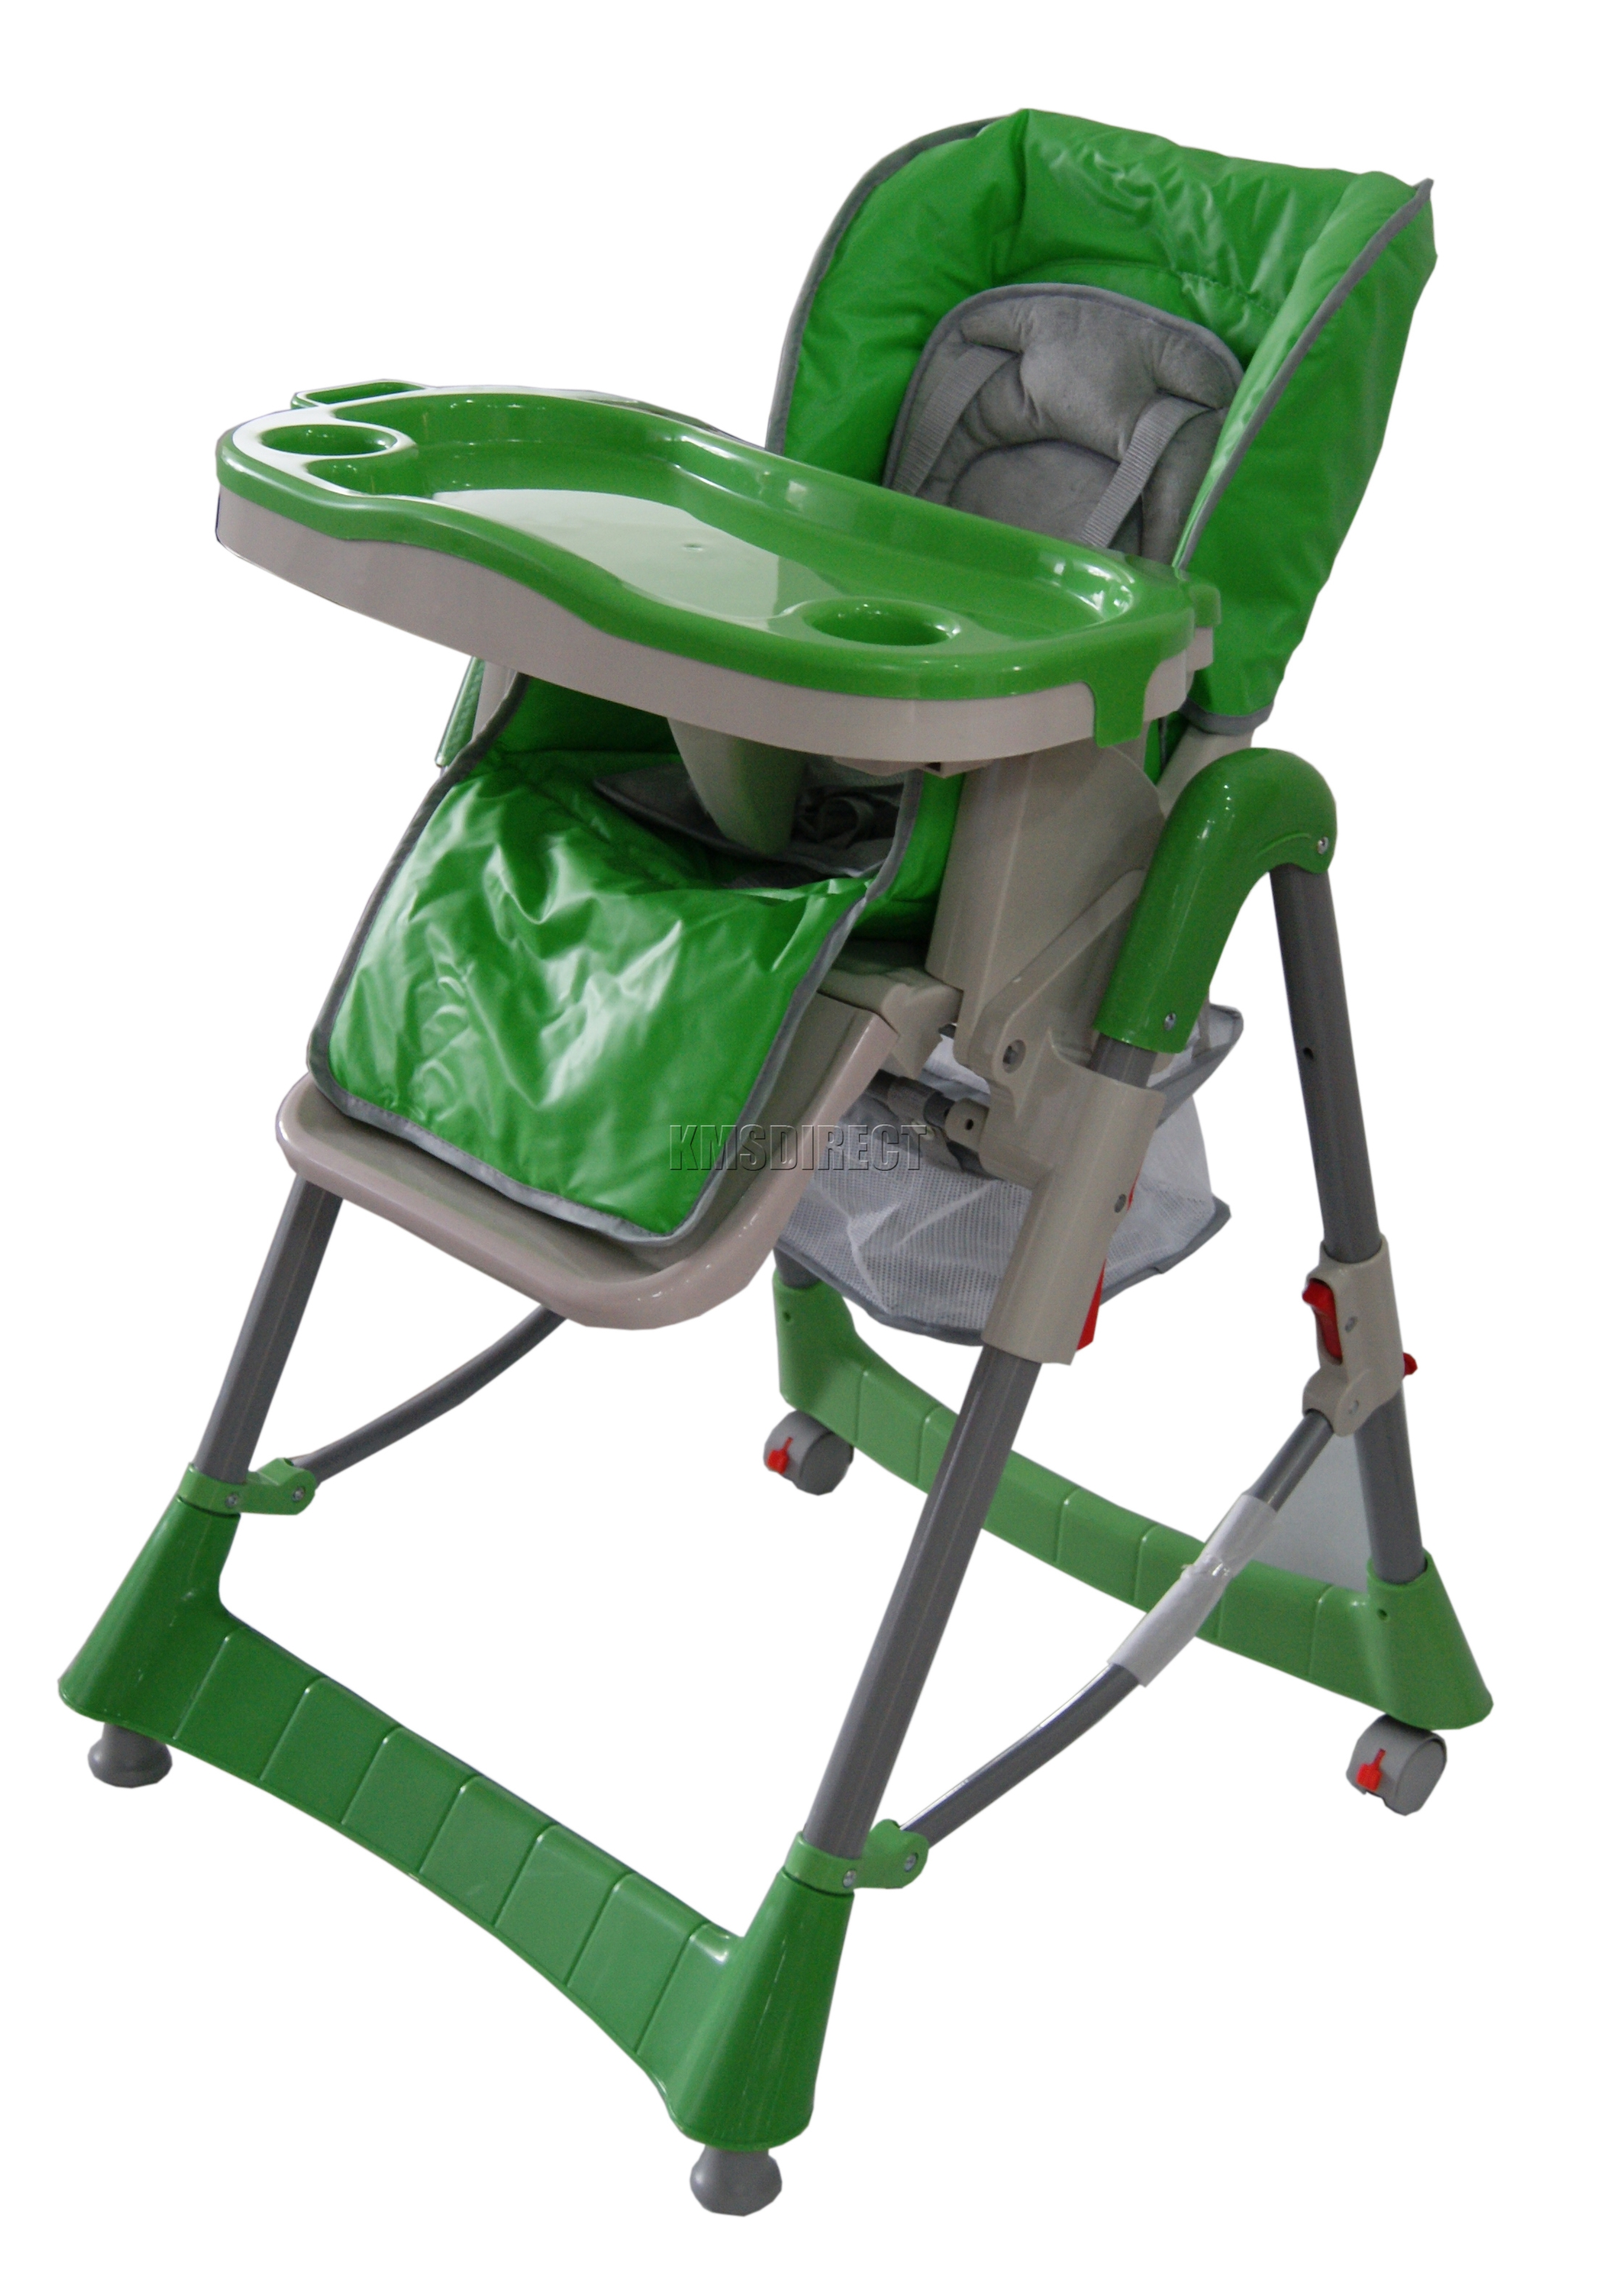 baby feeding chairs in sri lanka ergonomic standing chair foldable high recline highchair height